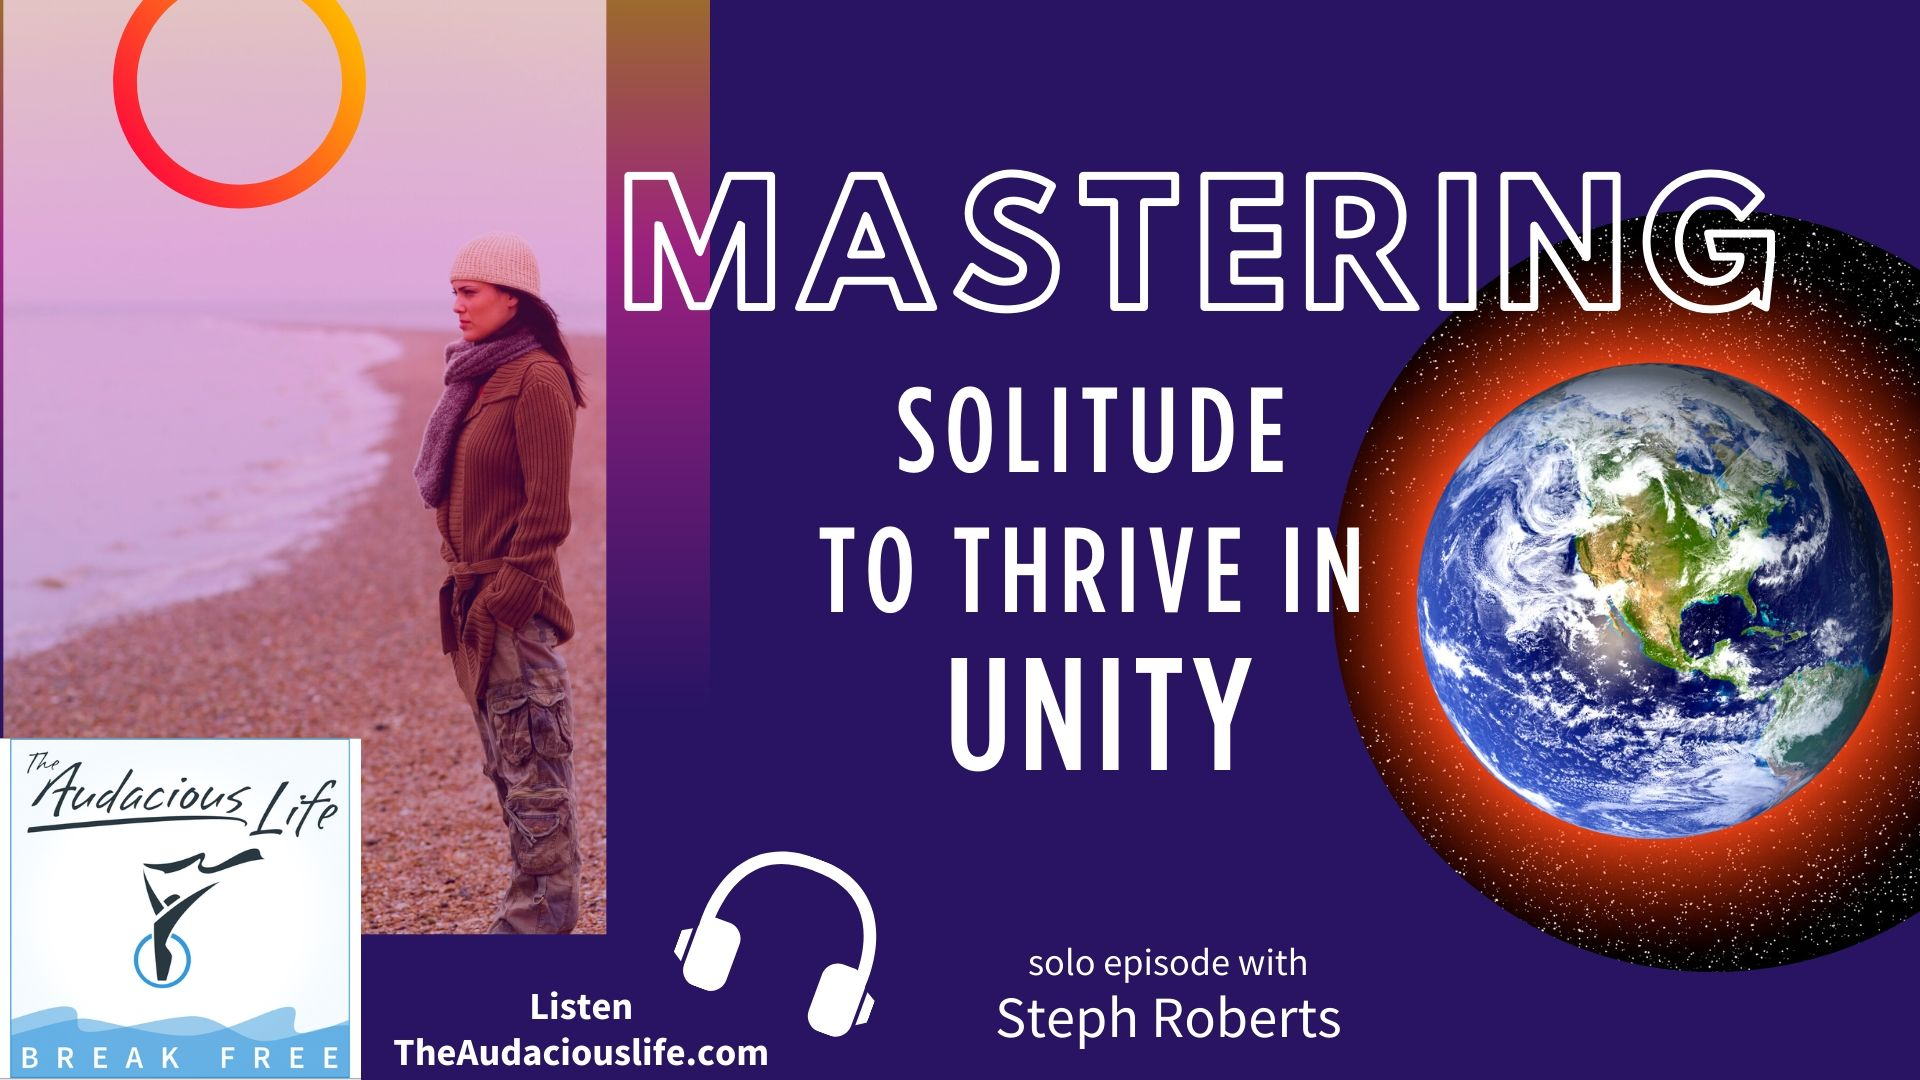 Mastering solitude to thrive in unity